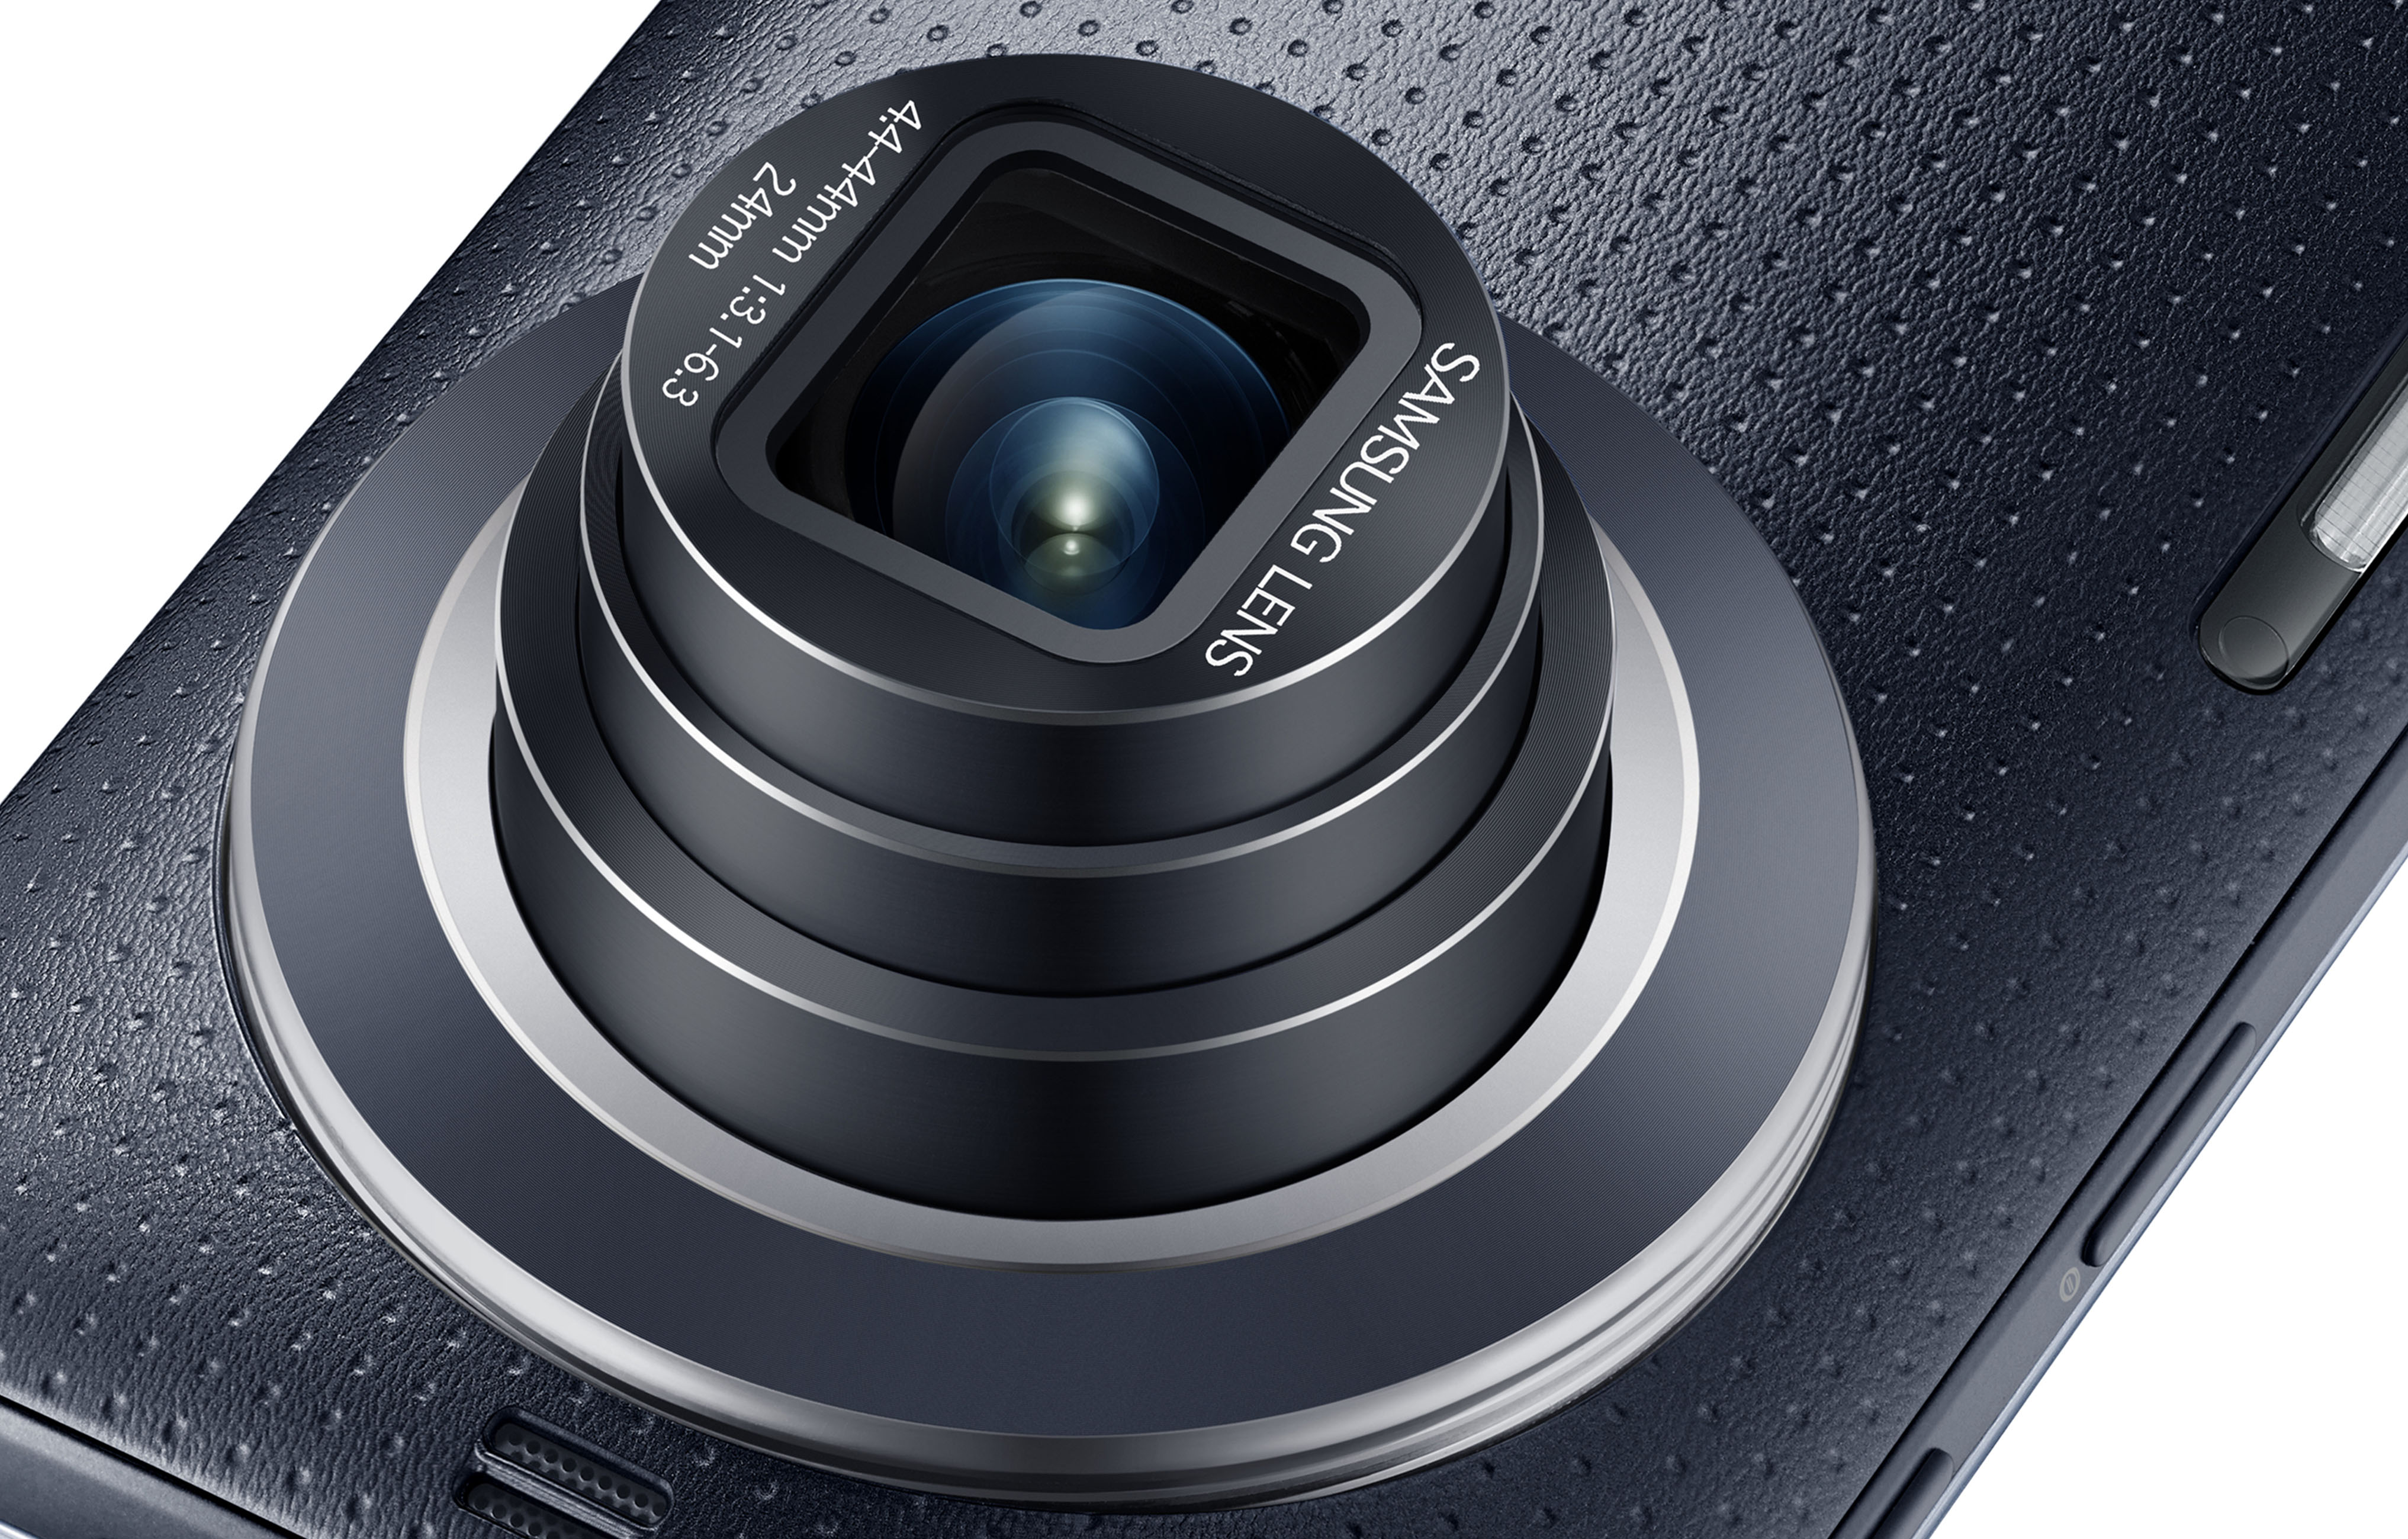 Galaxy K zoom_Charcoal Black_10